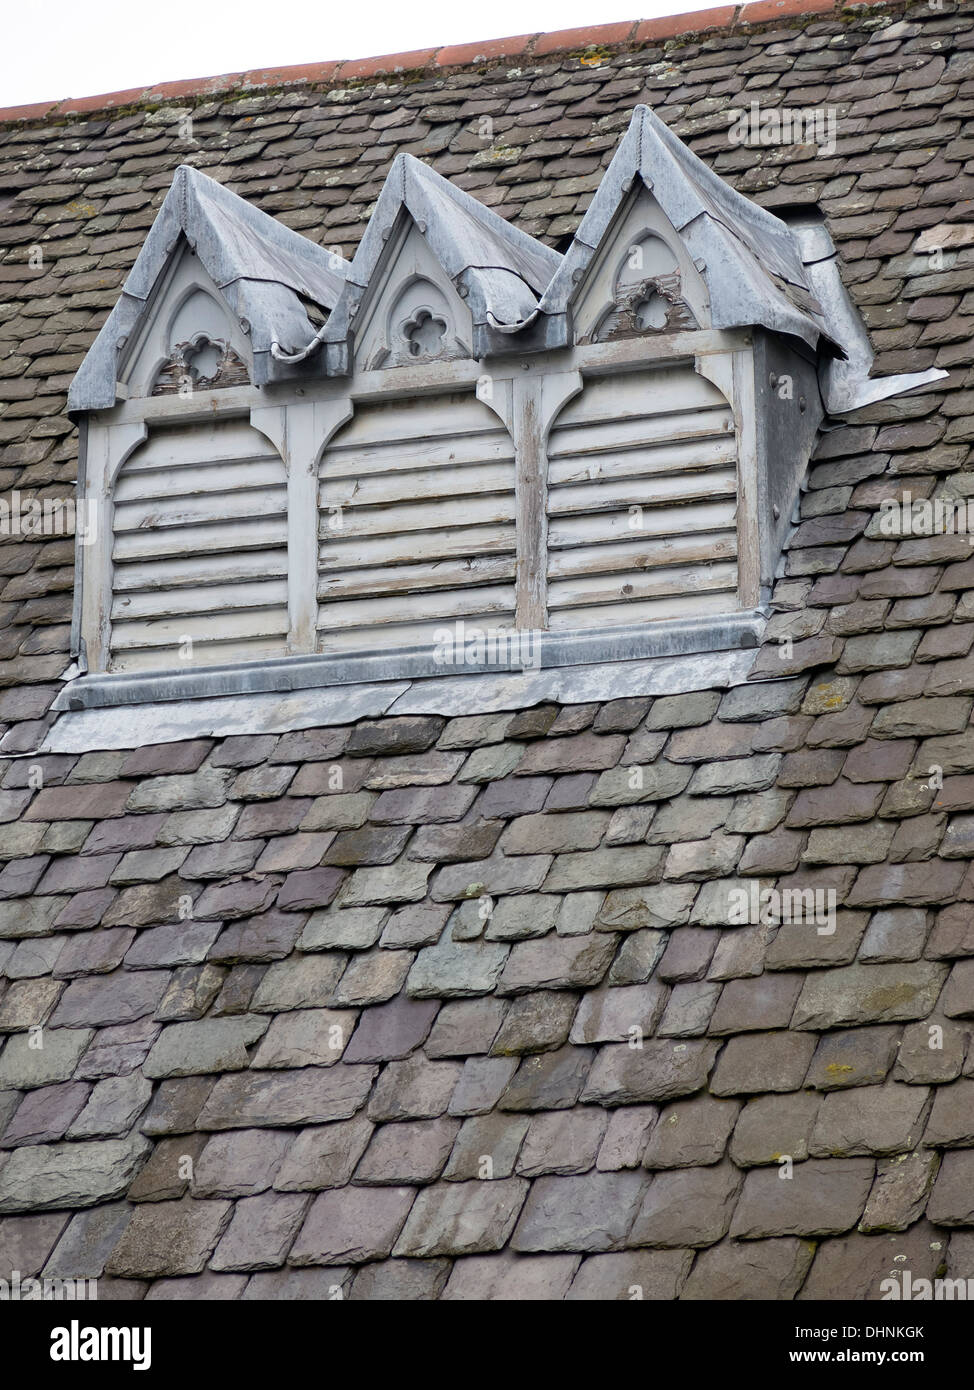 Old wooden louvered roof vents in slated tiled roof Leicester